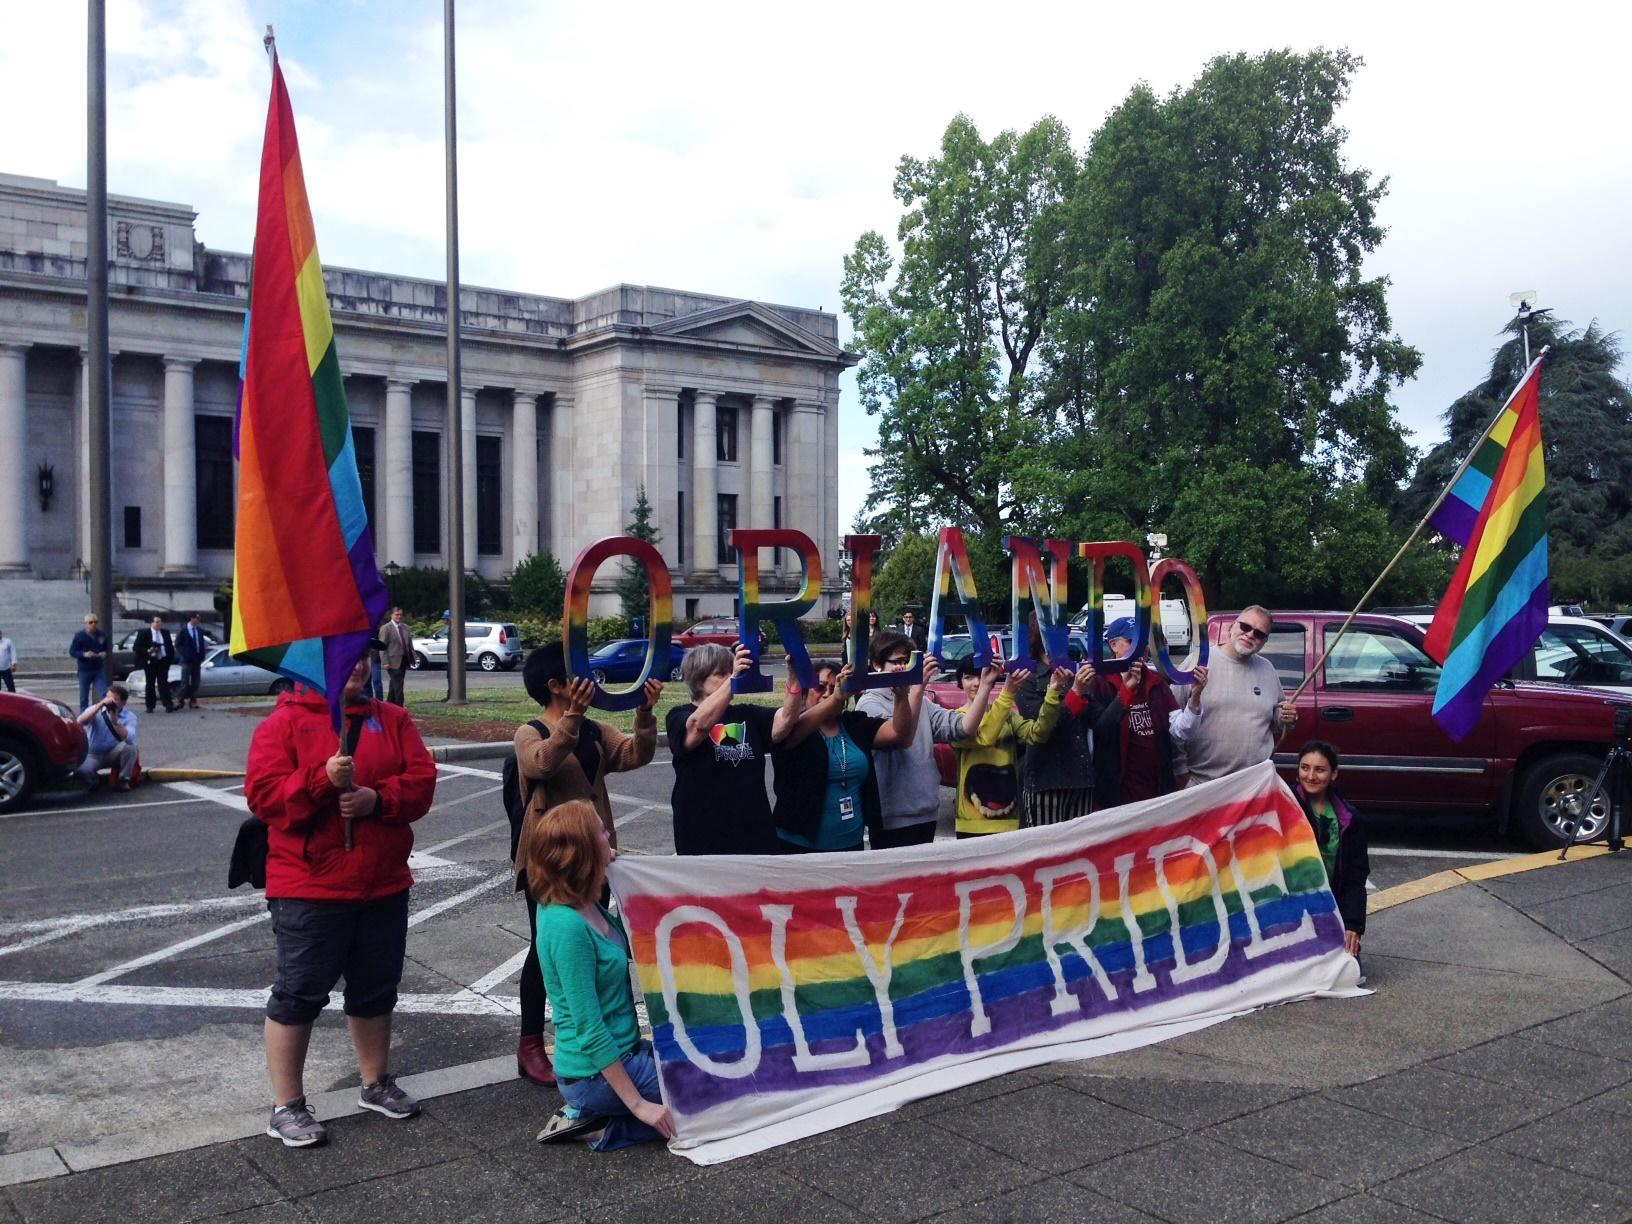 Members of Olympia's LGBT community hold up letters spelling ORLANDO at a flag raising event at the Capitol. Governor Jay Inslee raised the pride flag and then lowered it to half-staff in honor of the victims of last weekend's mass shooting.